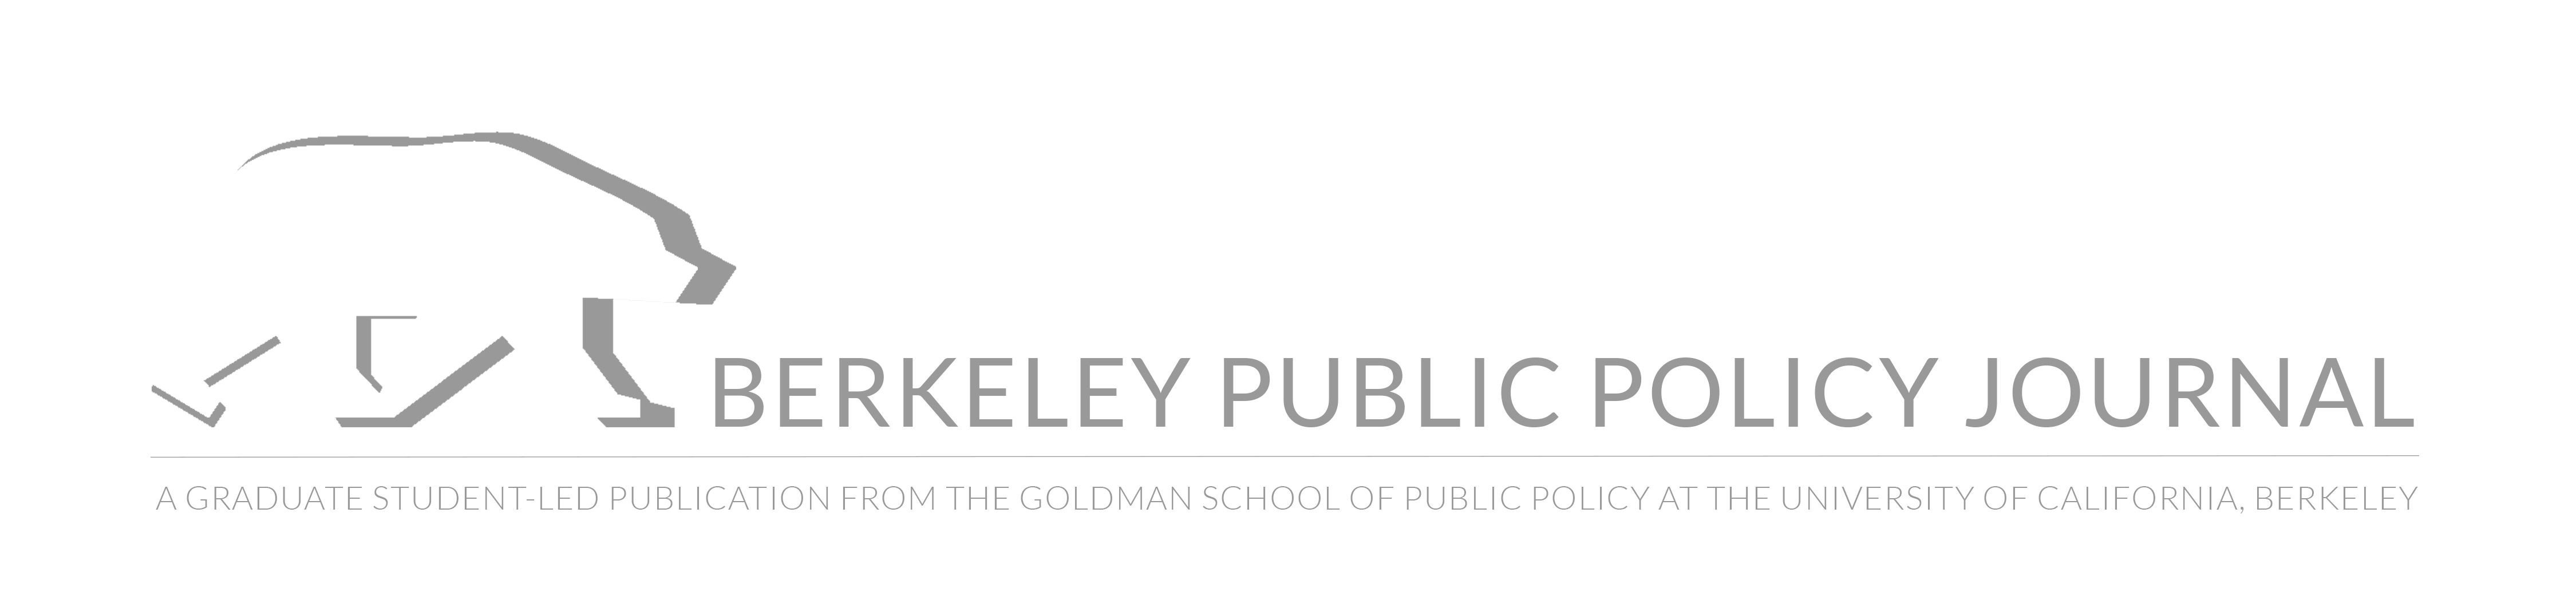 Berkeley Public Policy Journal